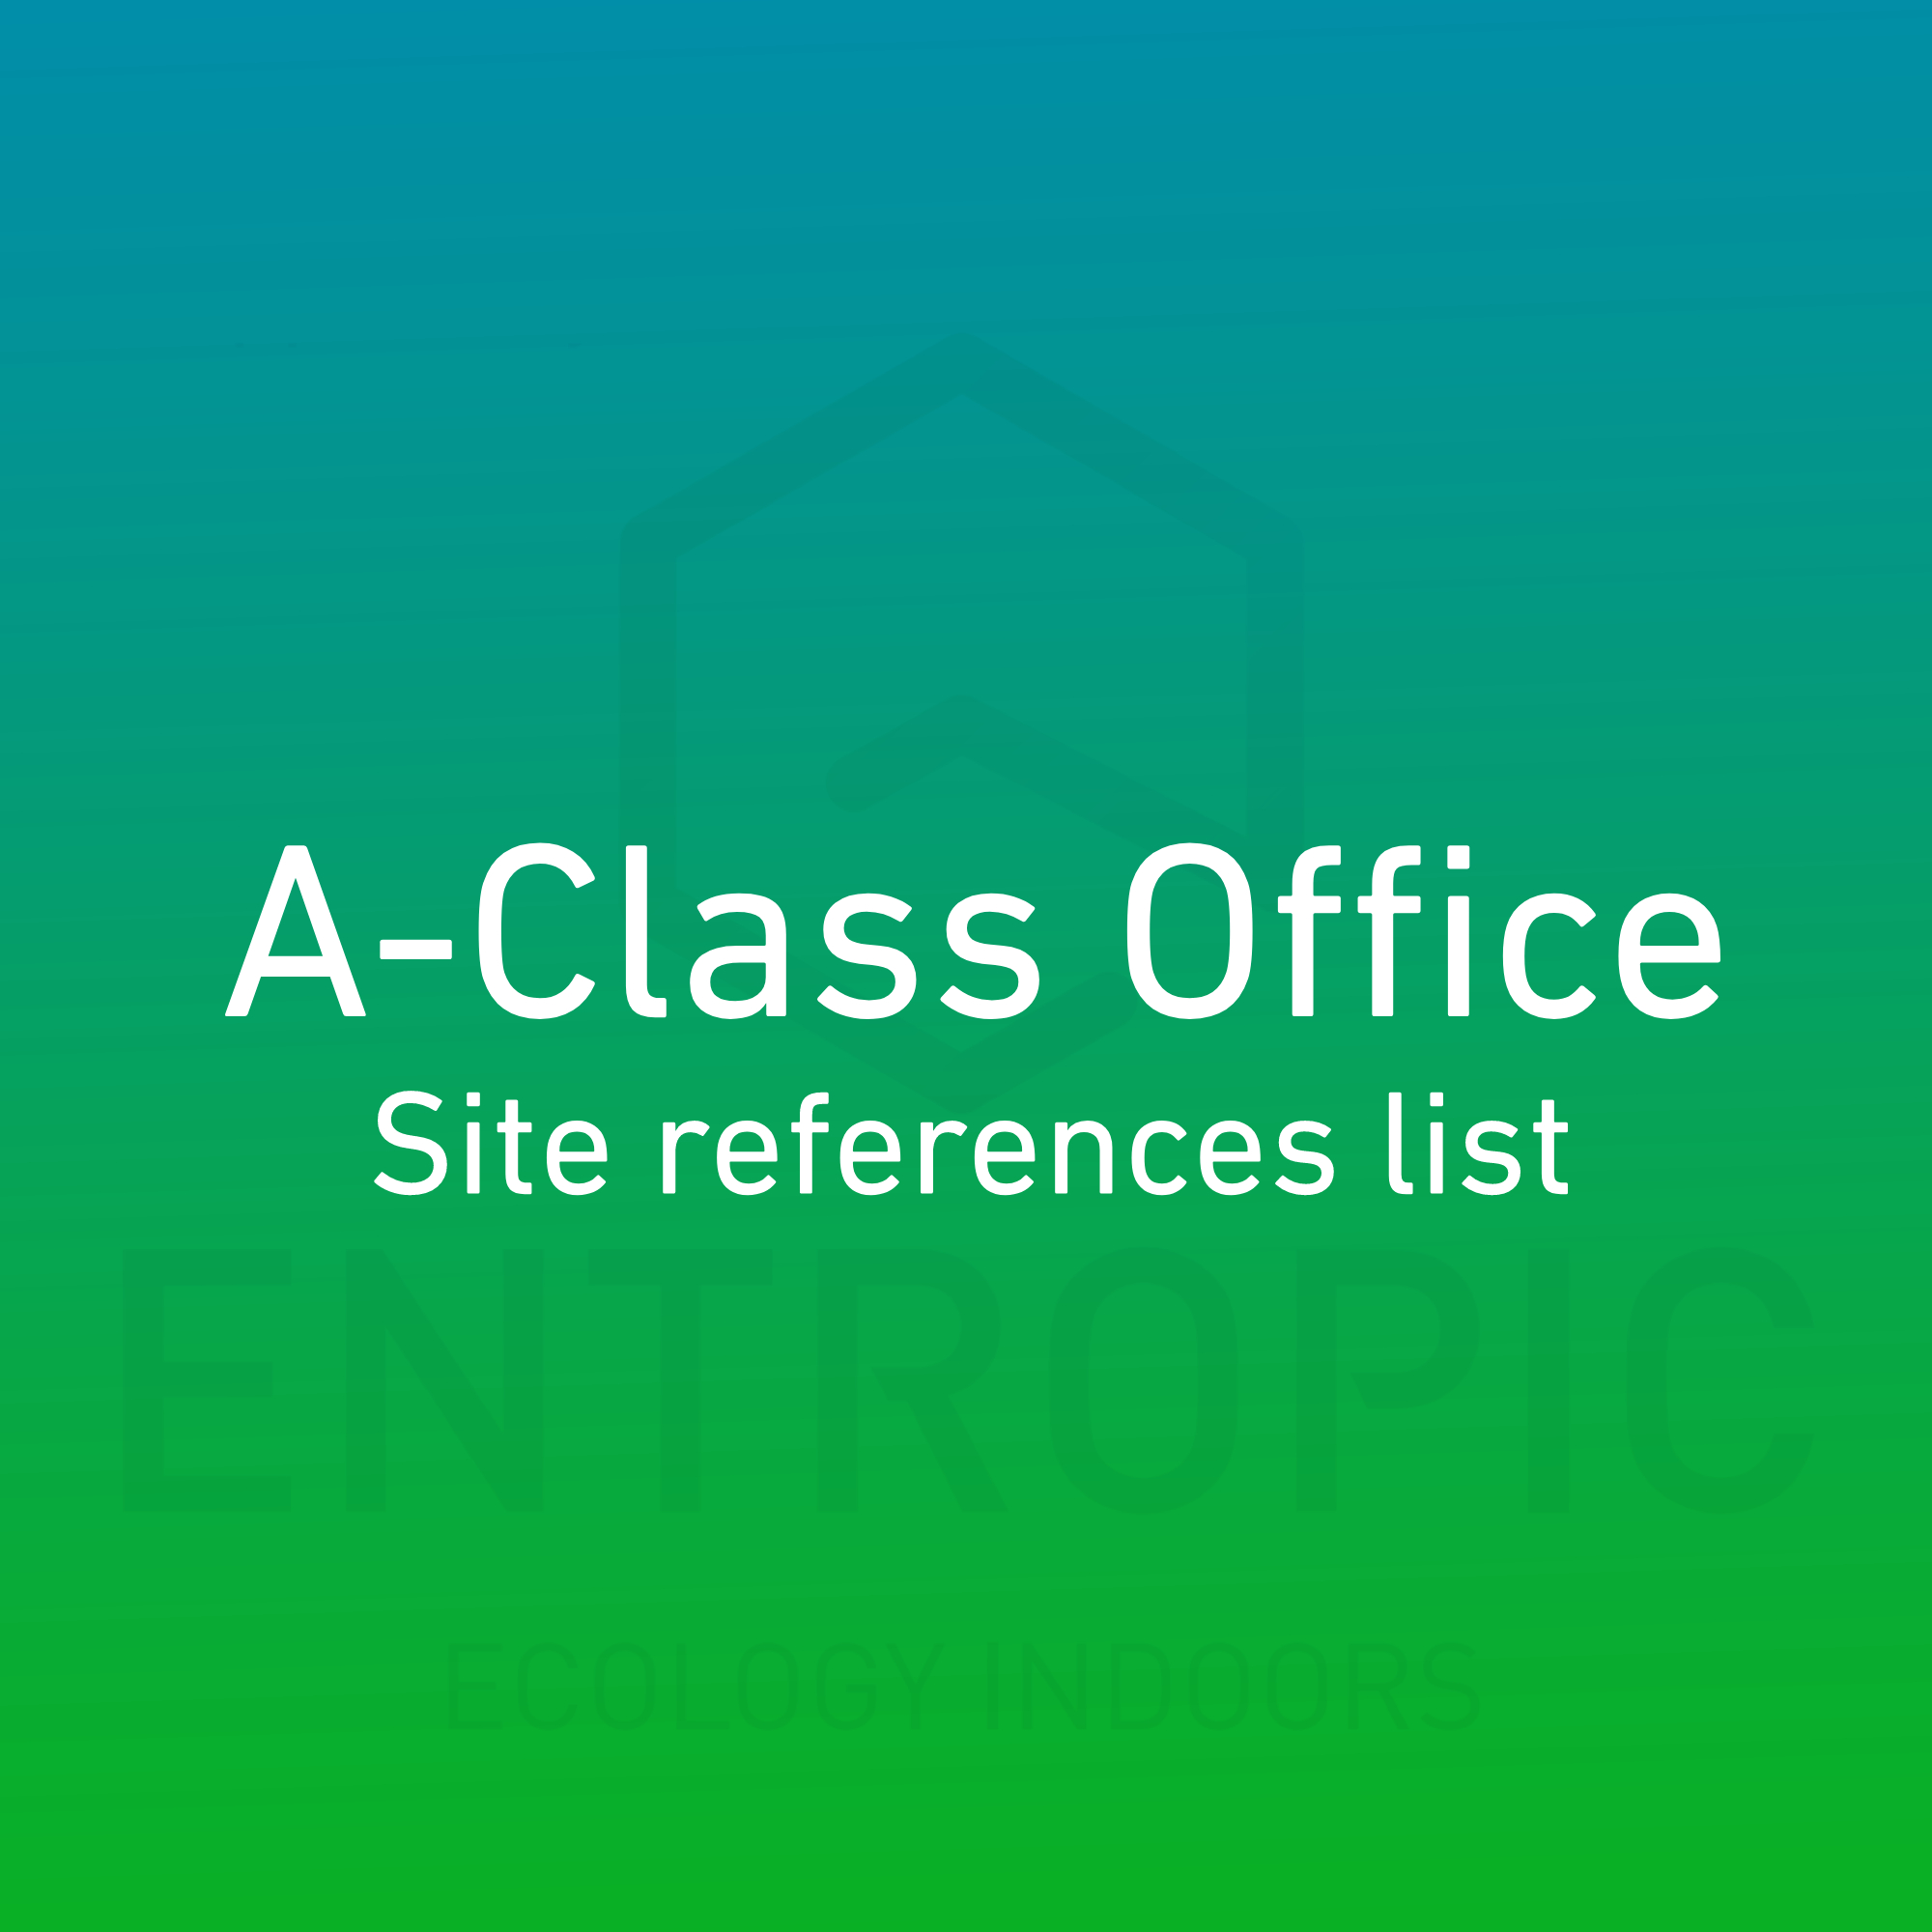 a-class-office-site-reference-list